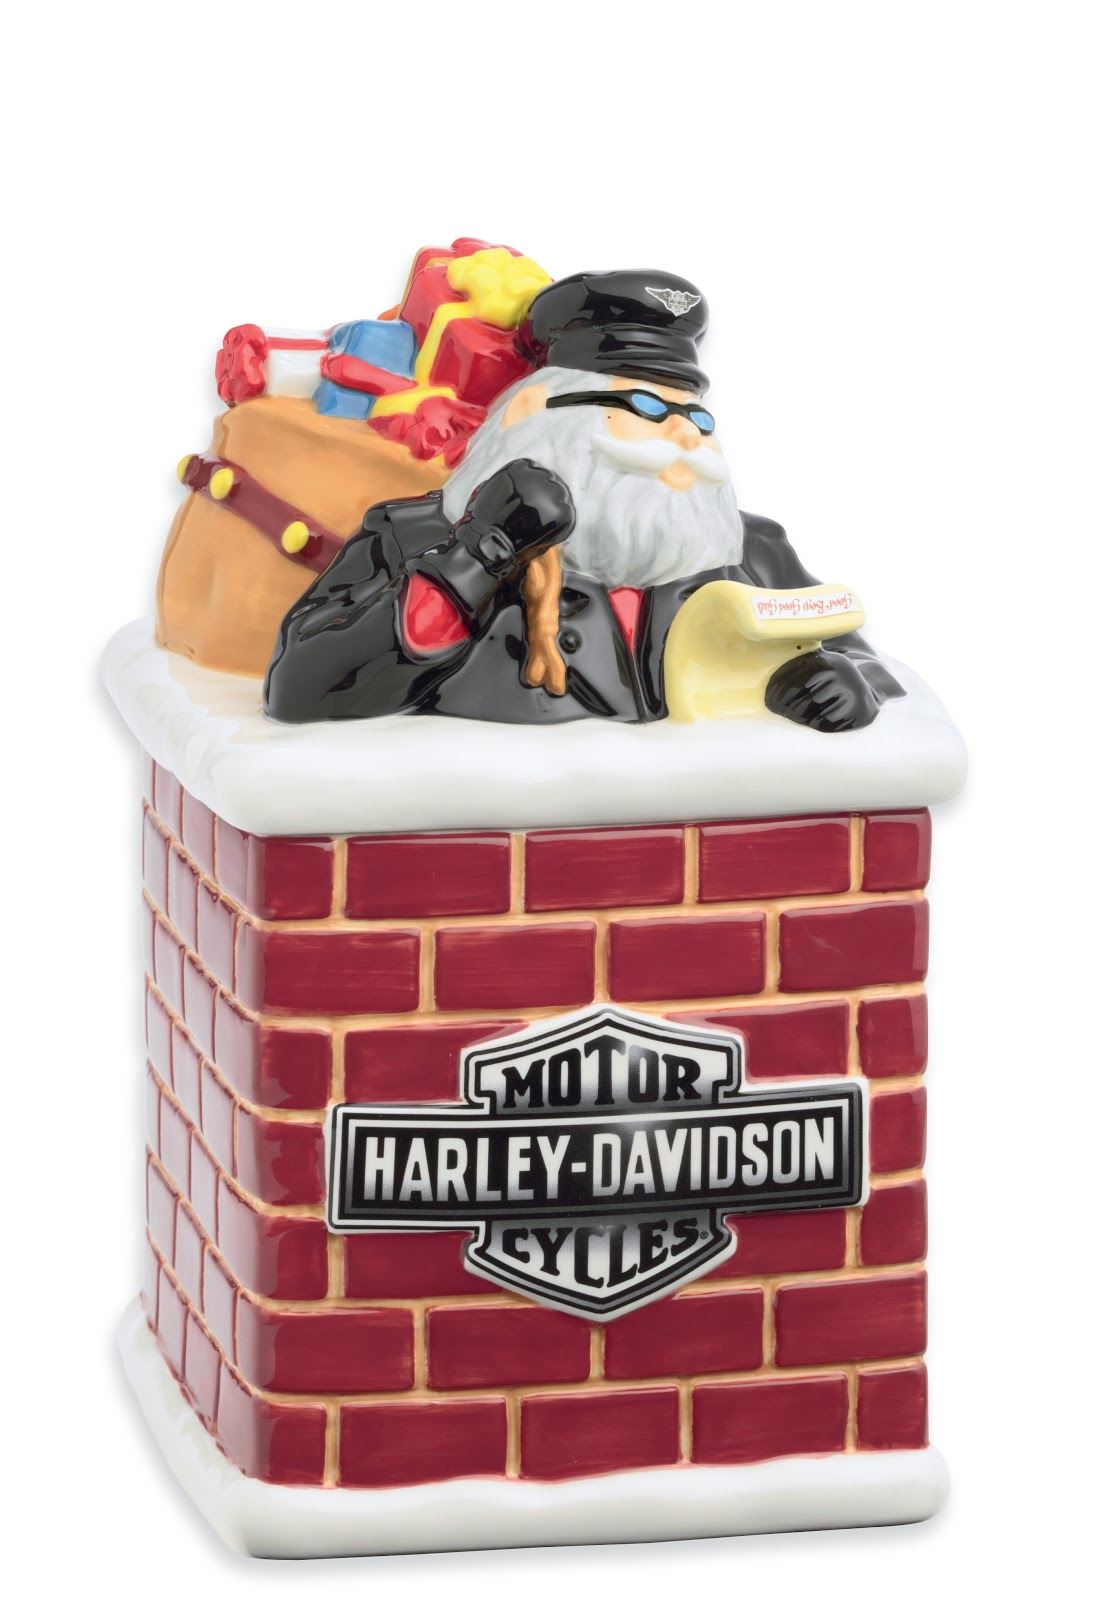 Liberty Harley Davidson Gift Ideas Part 2 For That